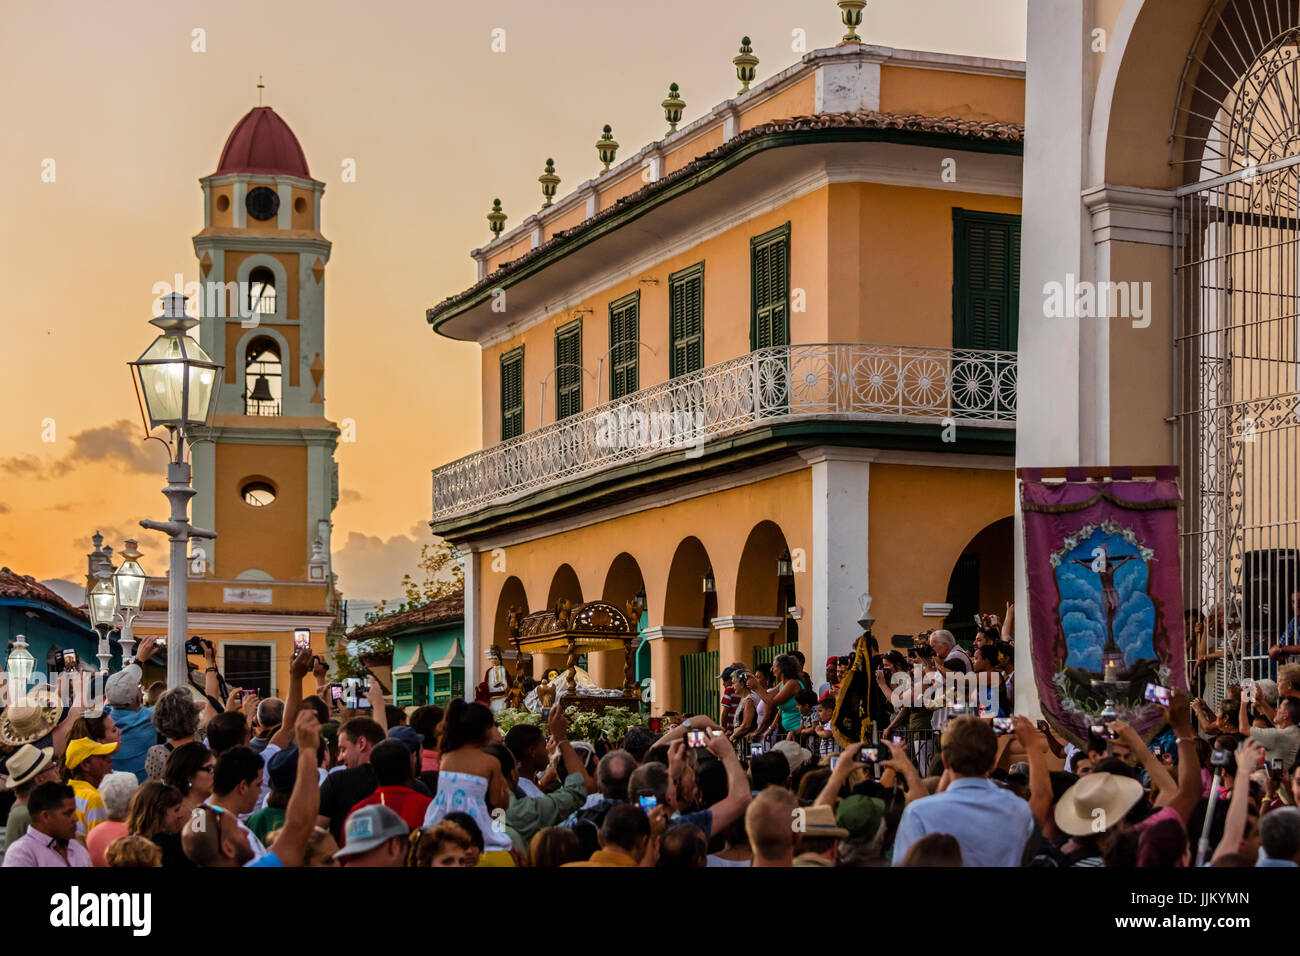 During EASTER known as SEMANA SANTA religious statues are paraded through town at dusk - TRINIDAD, CUBA - Stock Image